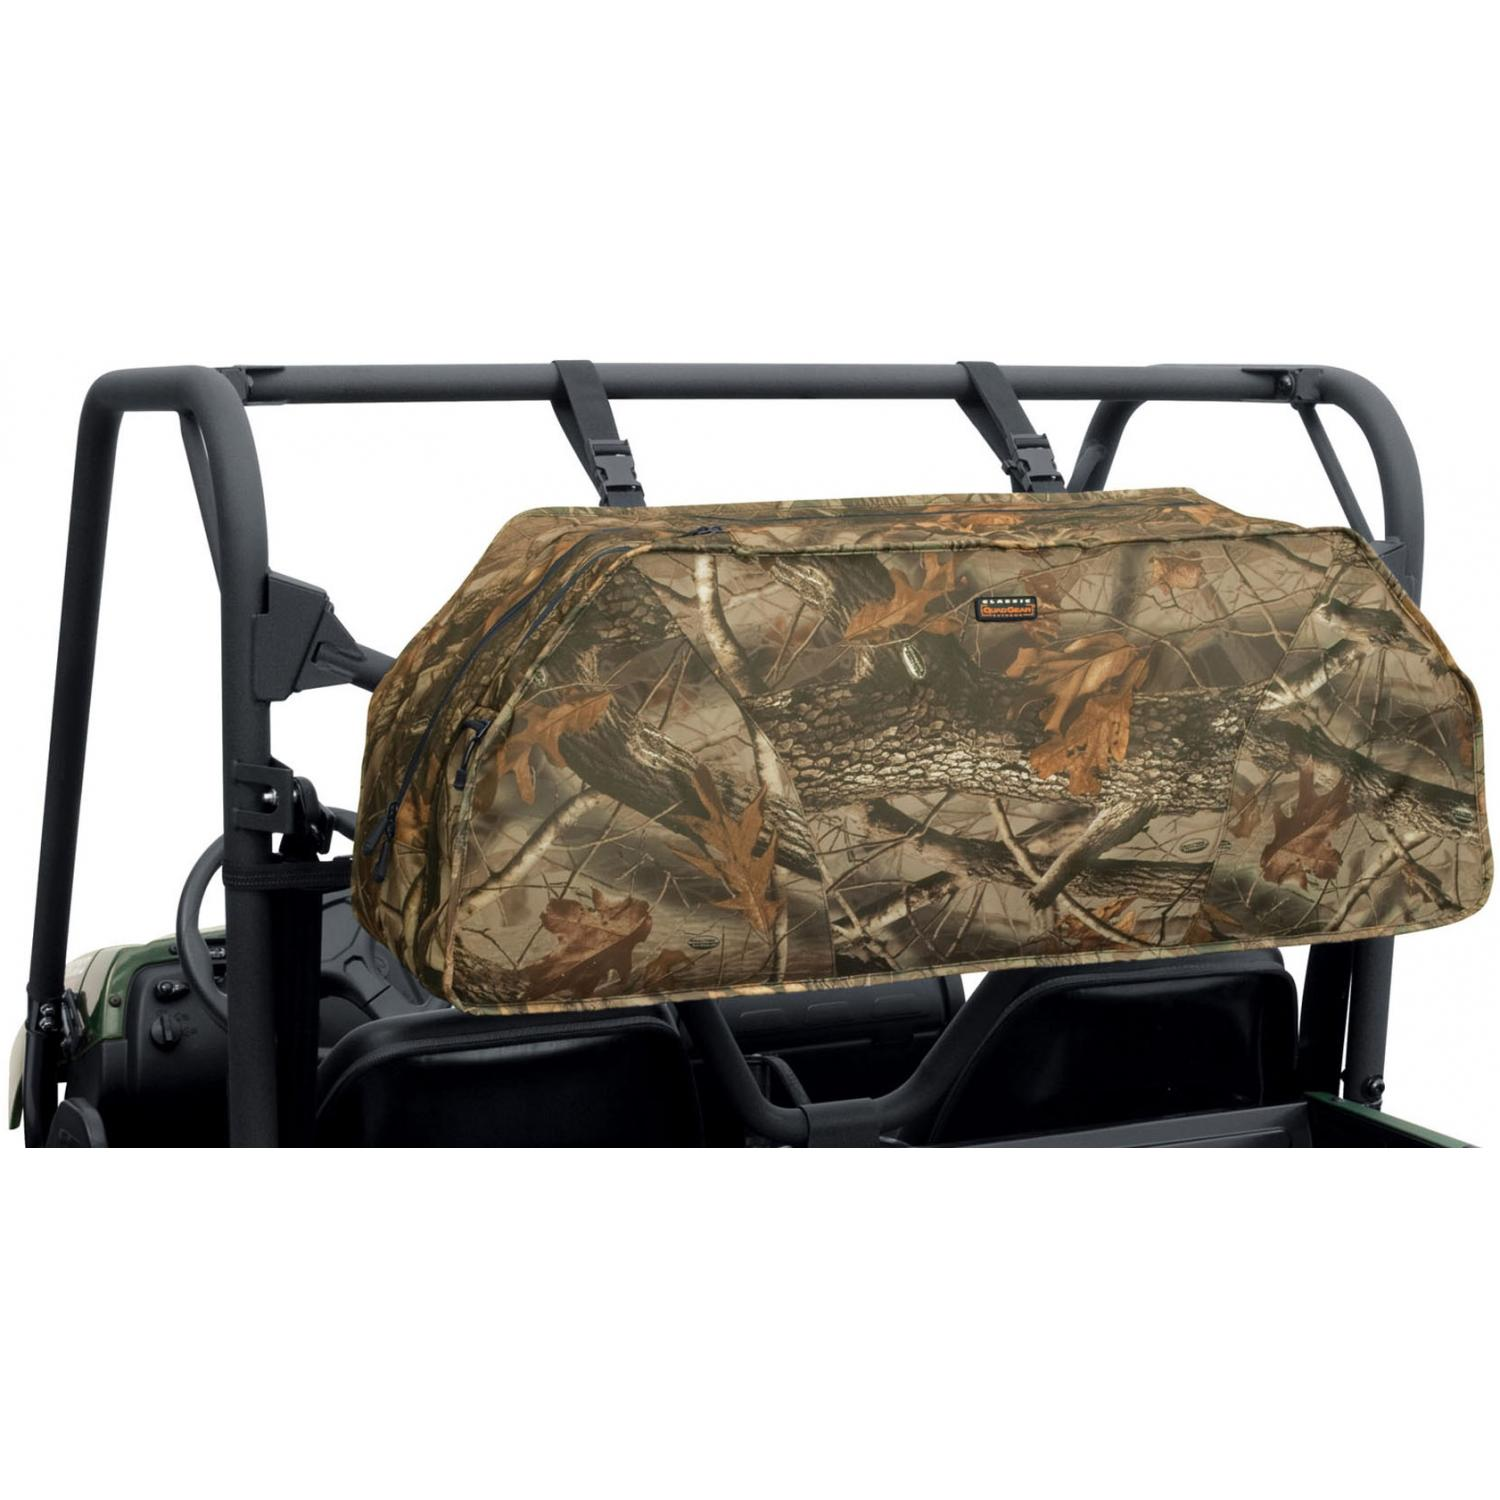 Classic Accessories QuadGear UTV Double Bow Case - Realtree Hardwoods Camo thumbnail